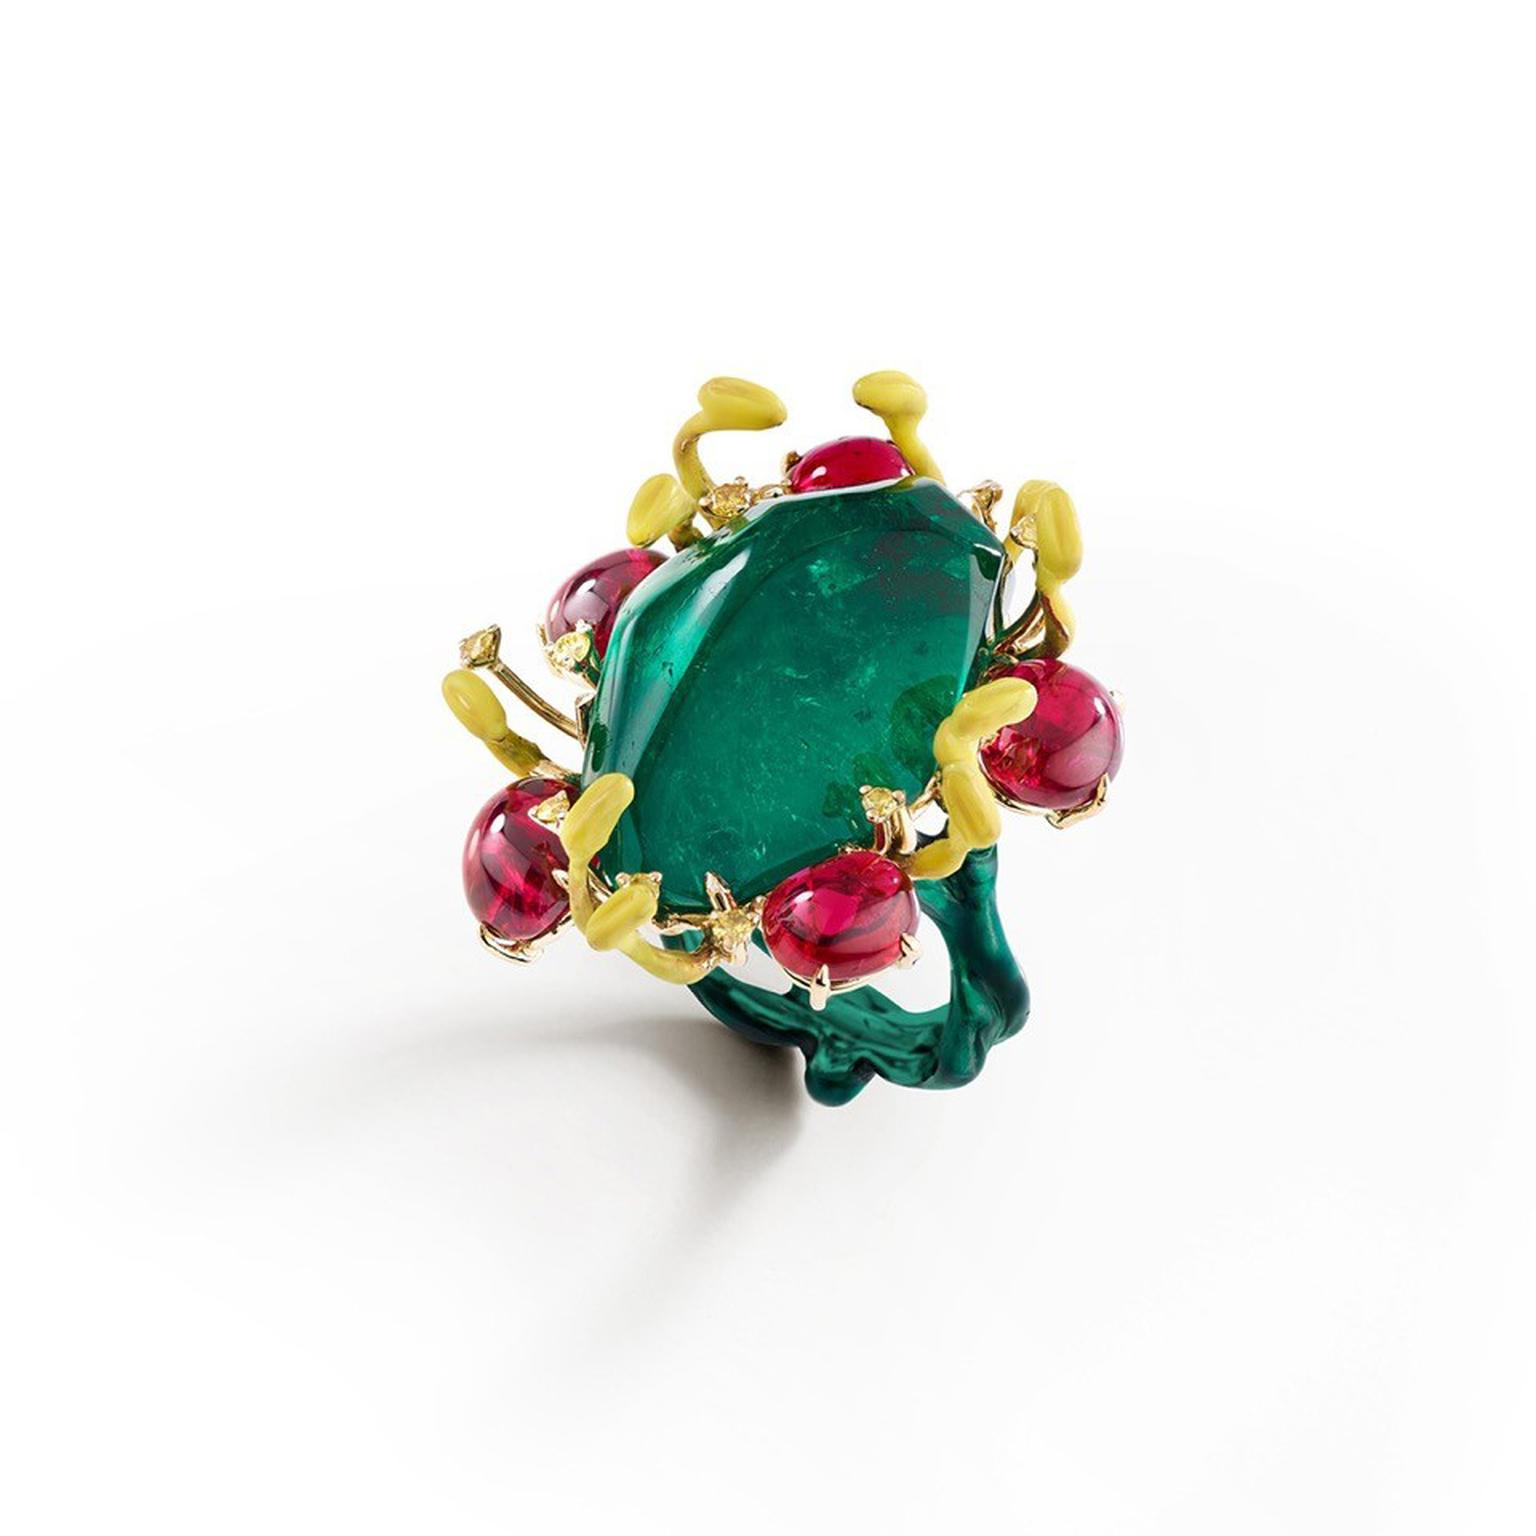 Suzanne Syz Power to the Flower ring